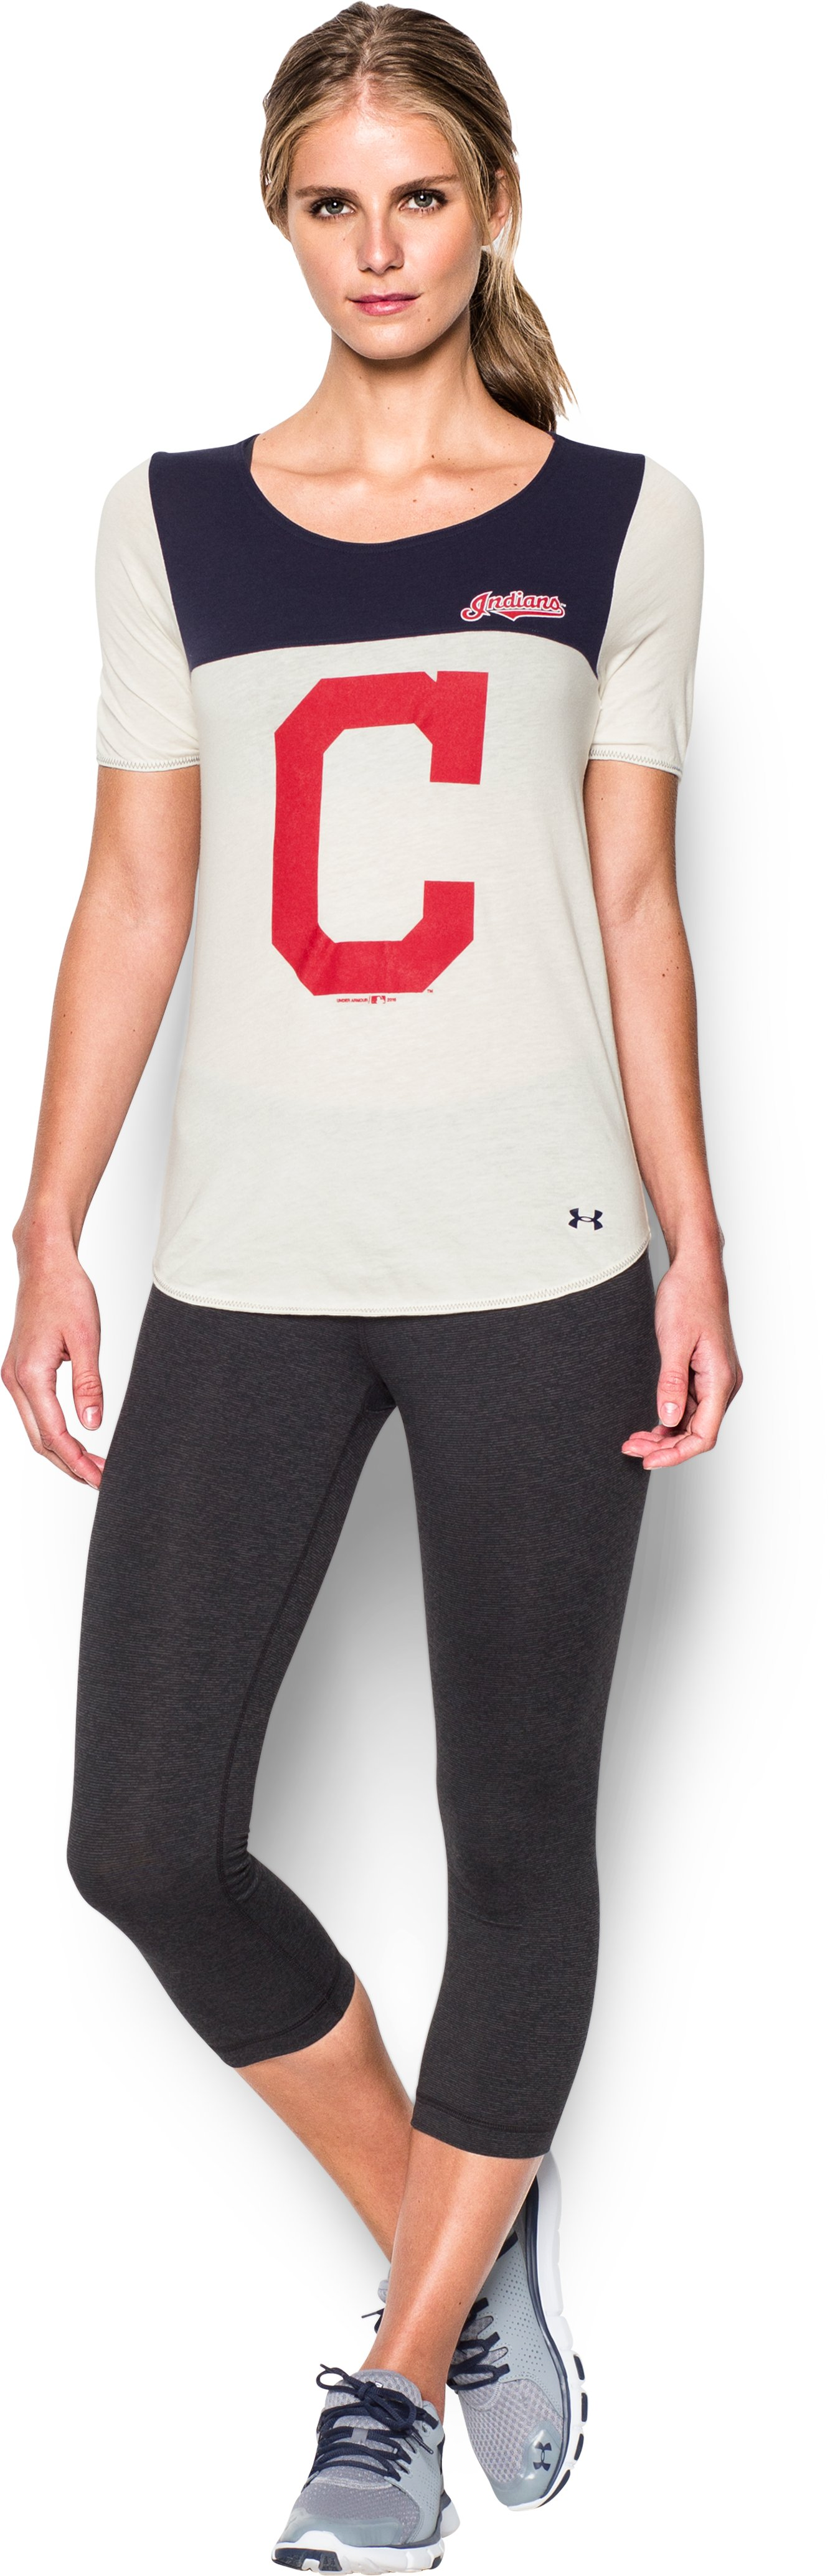 Women's Cleveland Indians Vintage Shirzee, Midnight Navy, zoomed image